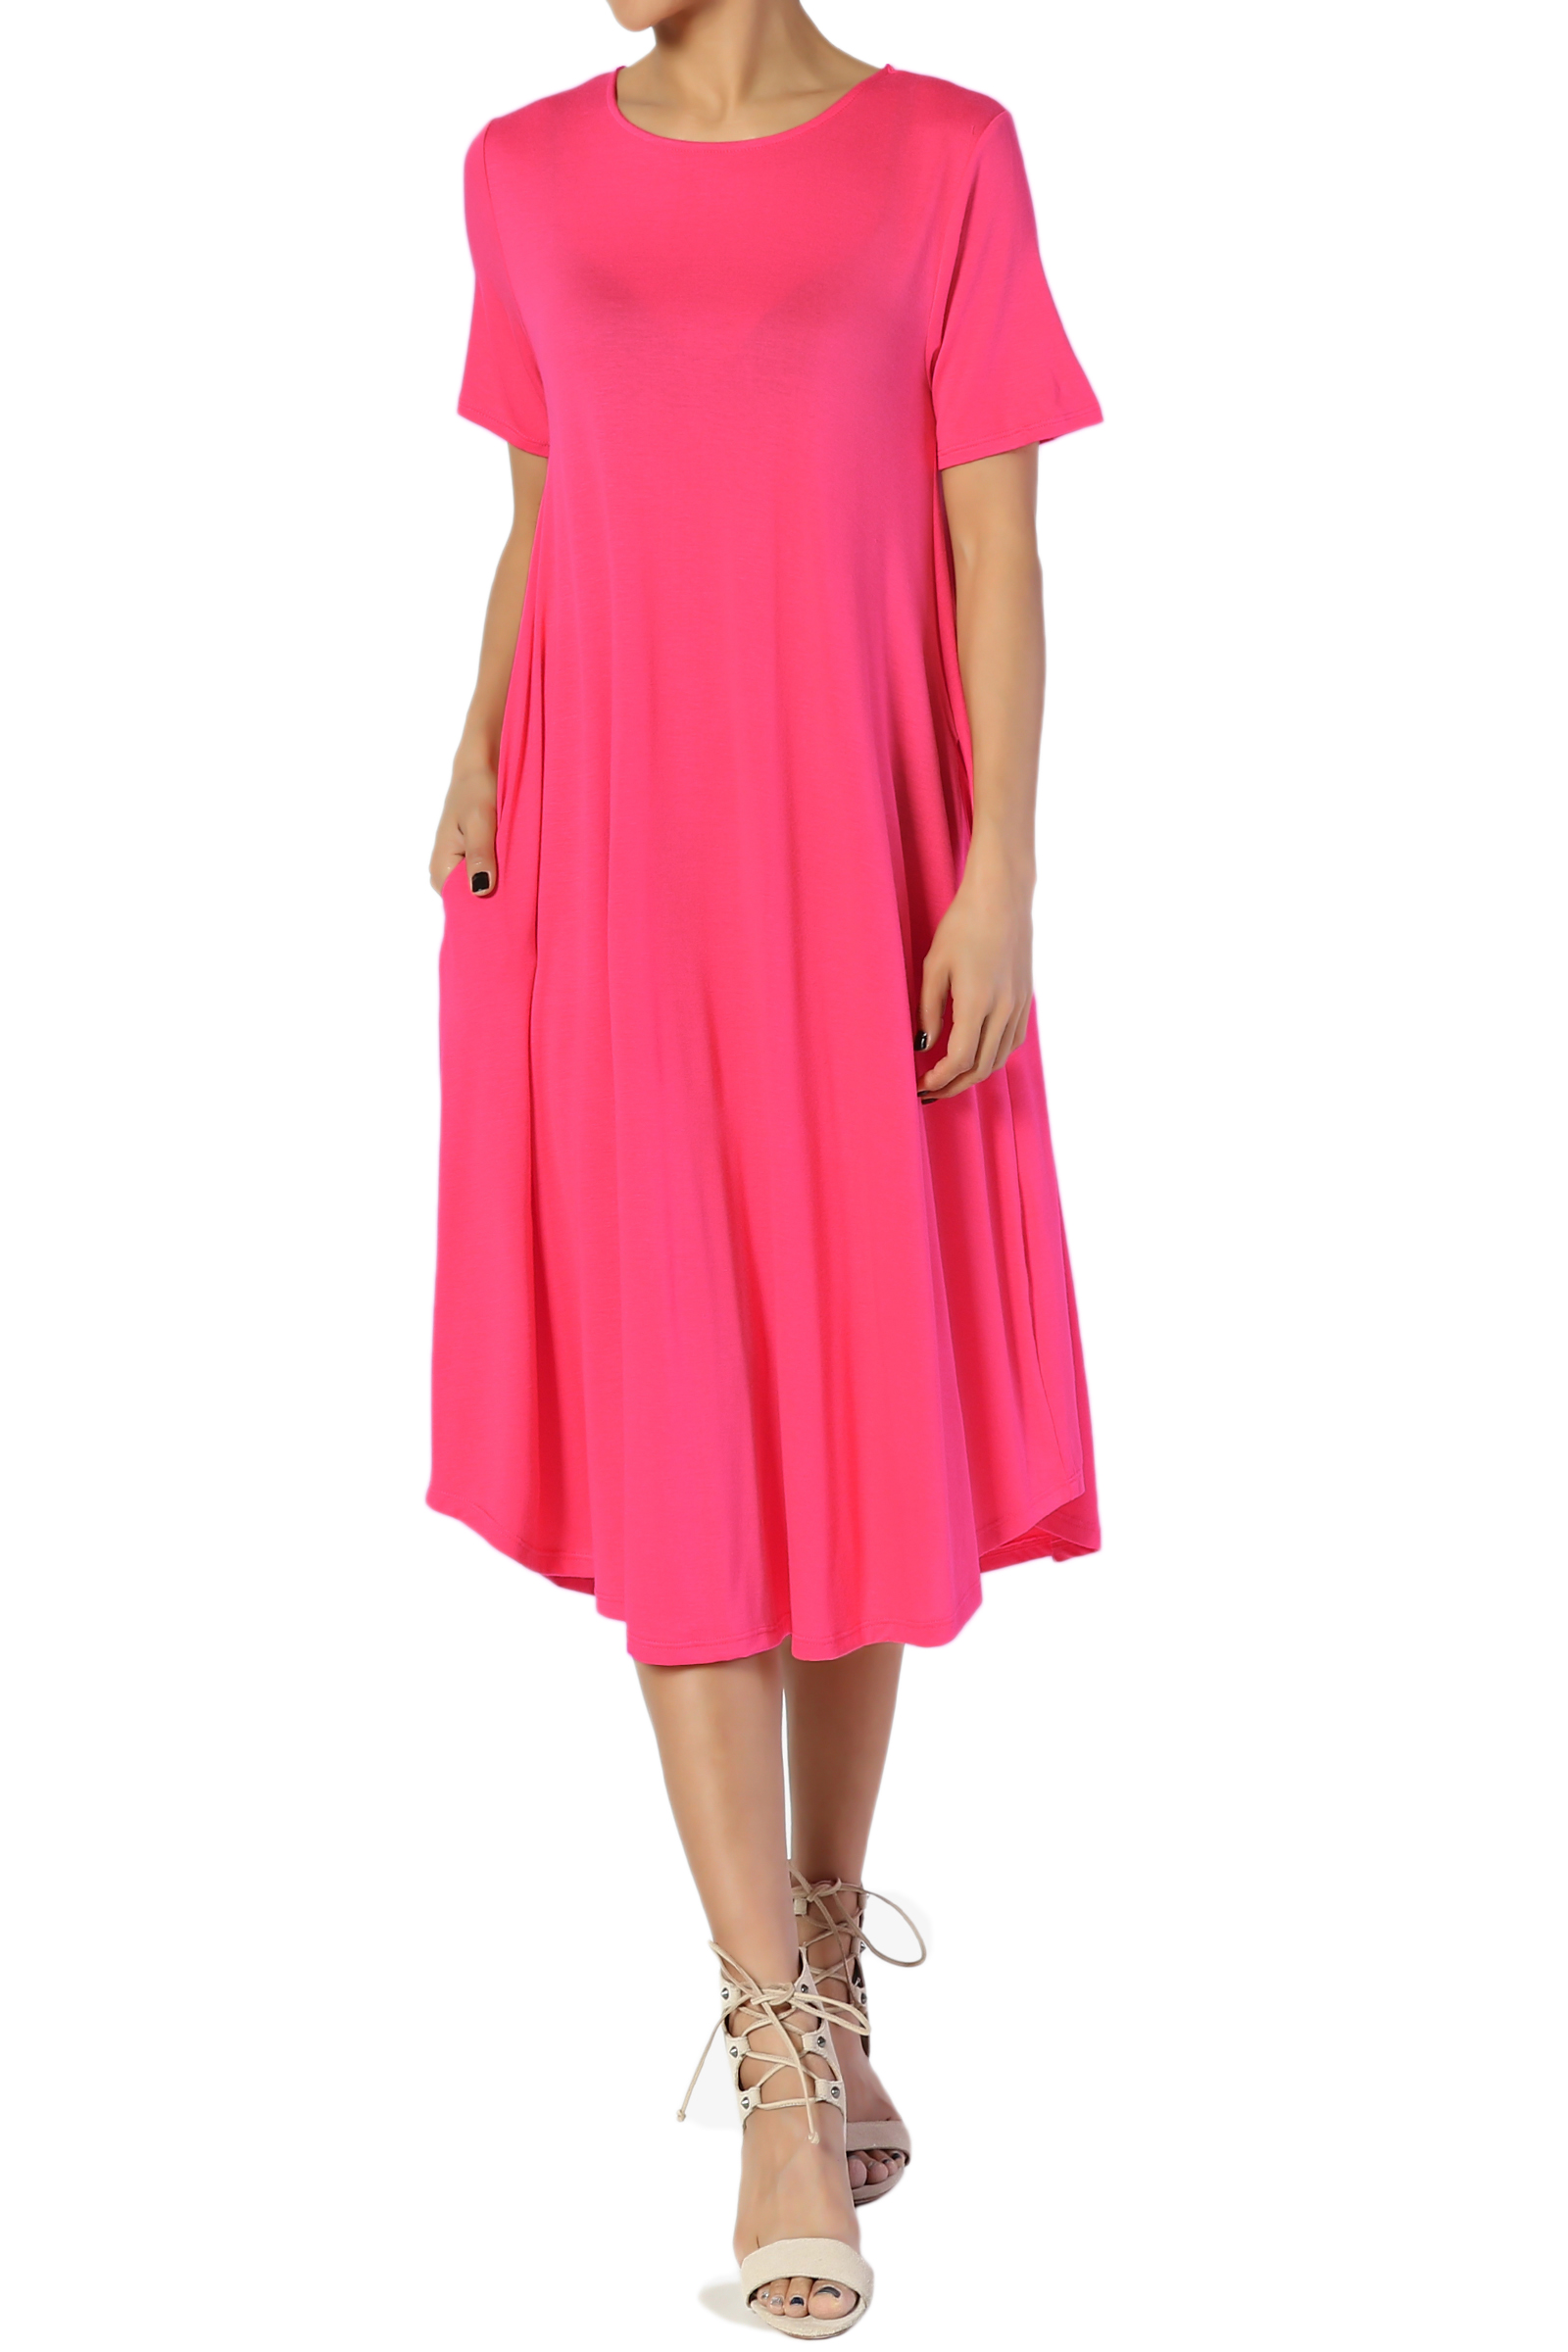 TheMogan Women's S~3X Short Sleeve Fit & Flare A-line Draped Jersey Midi Dress